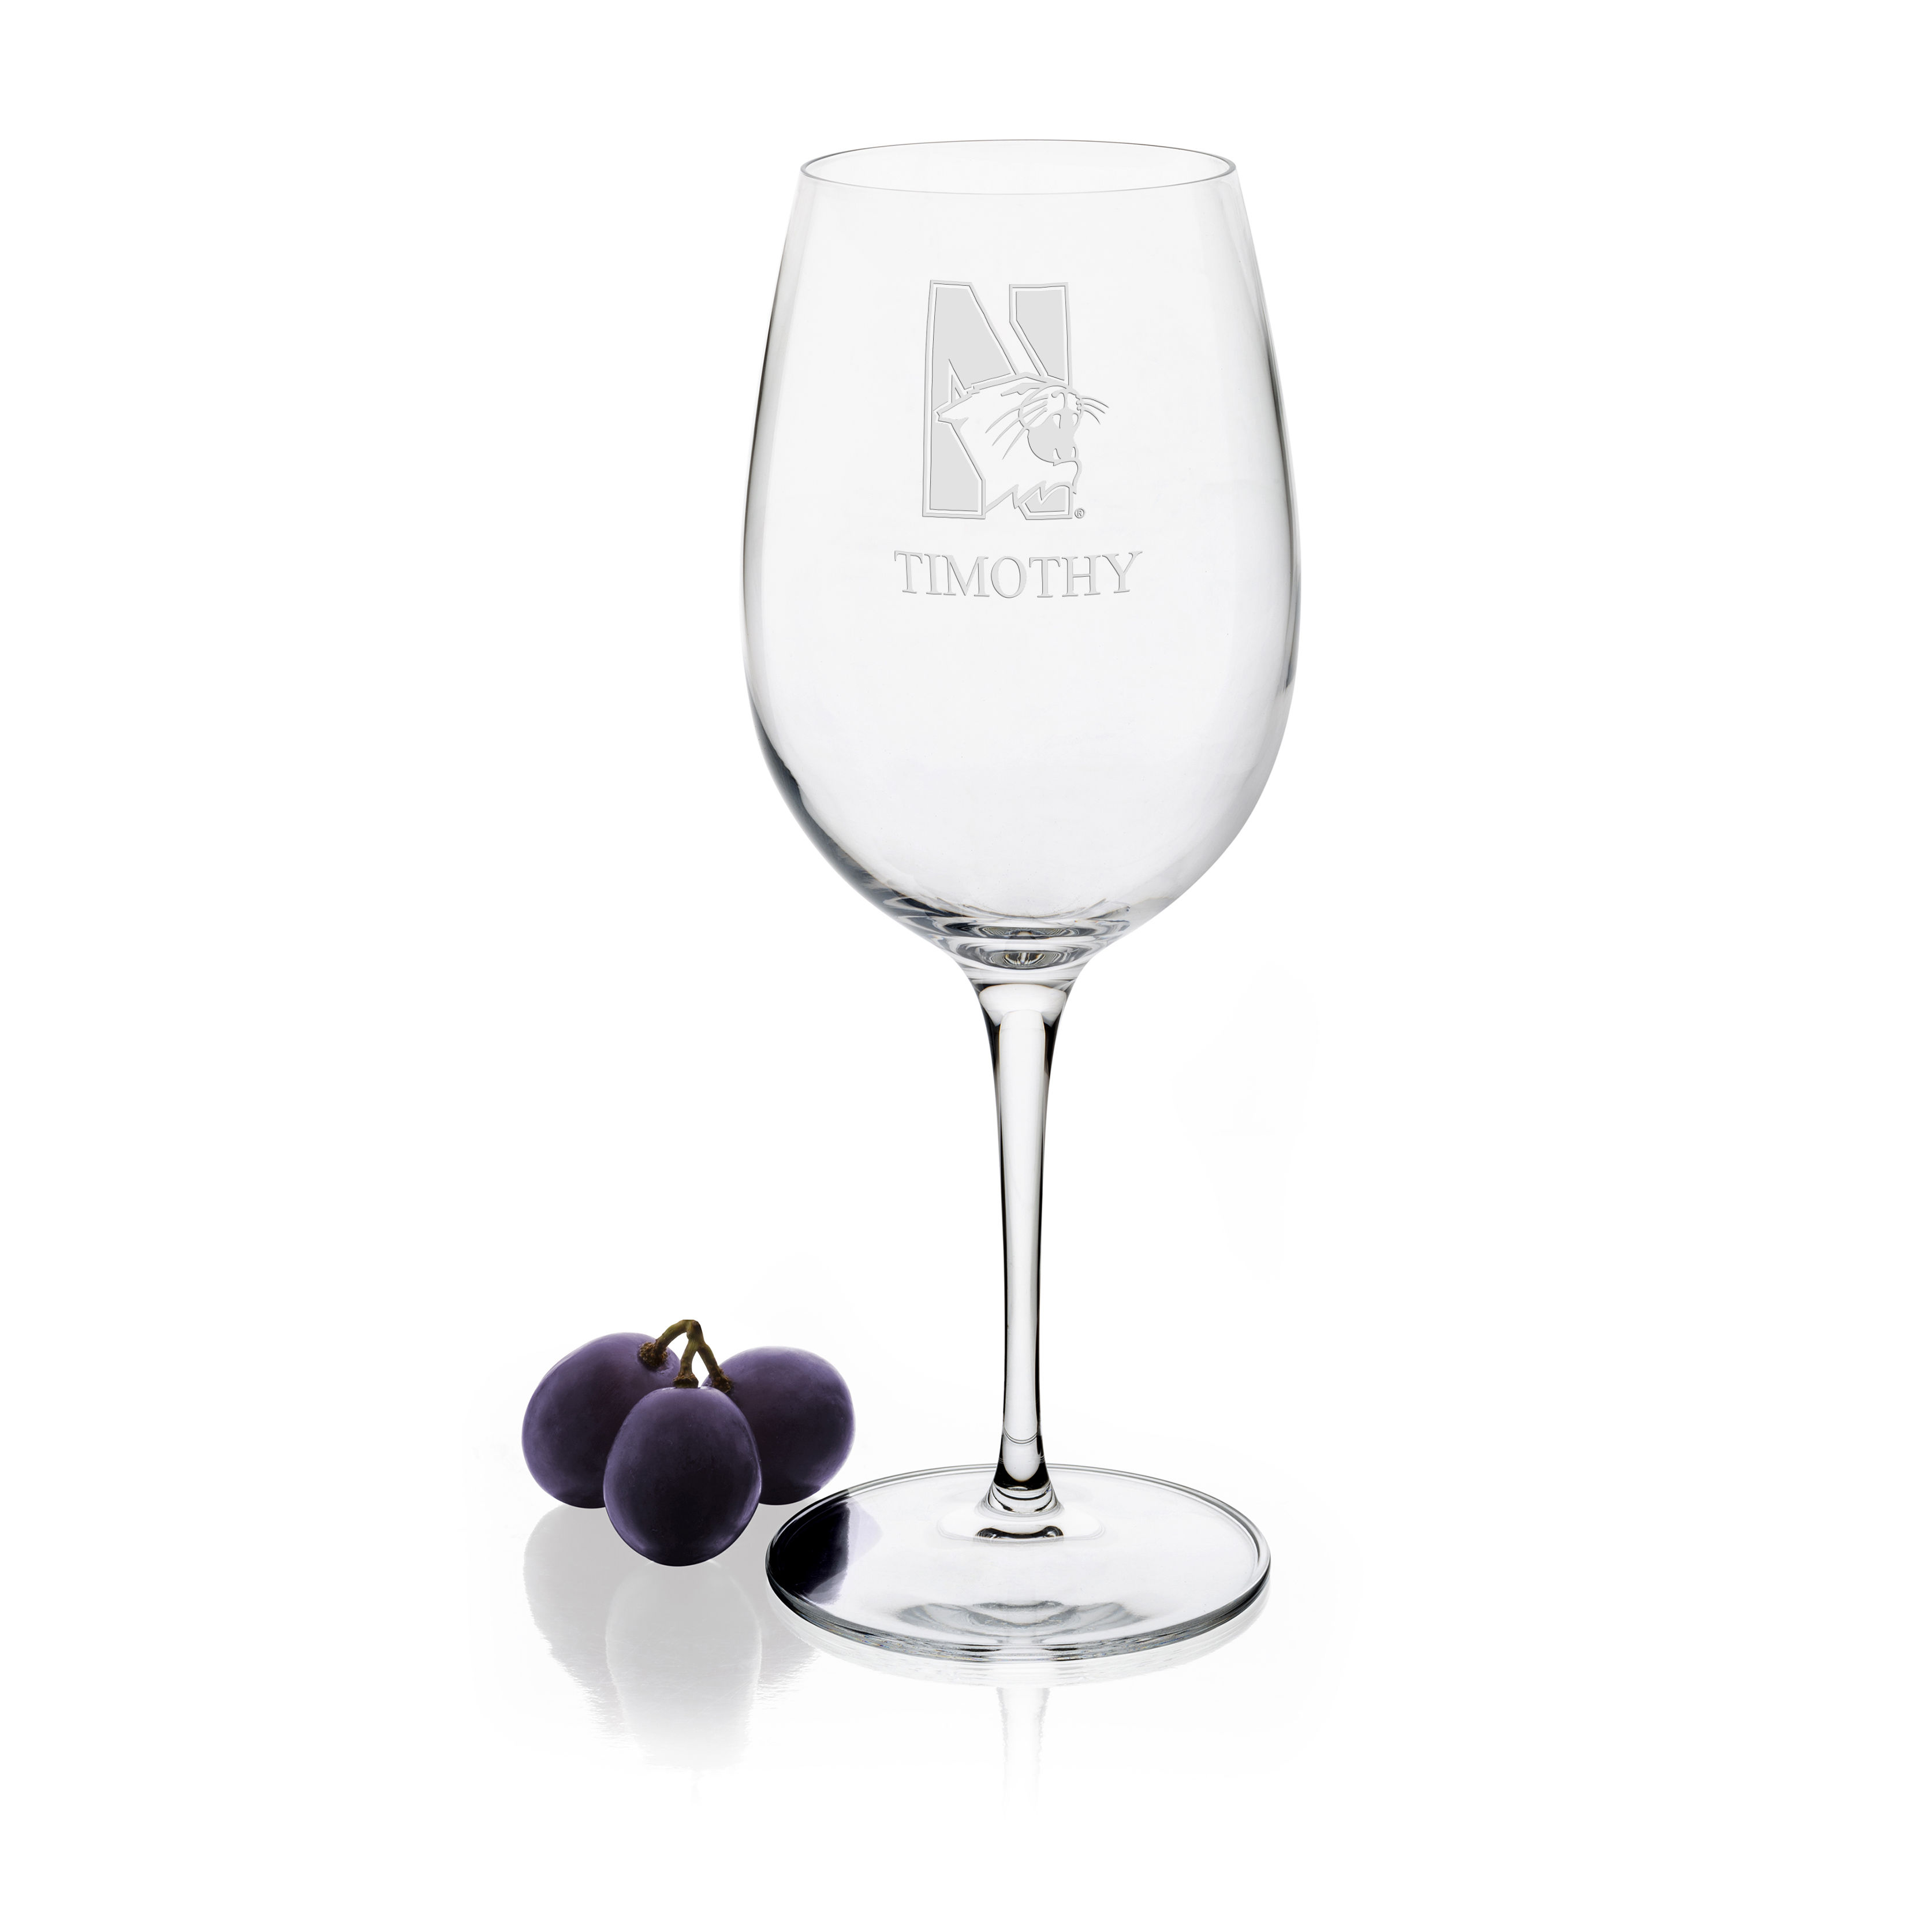 Northwestern University Red Wine Glasses - Set of 2